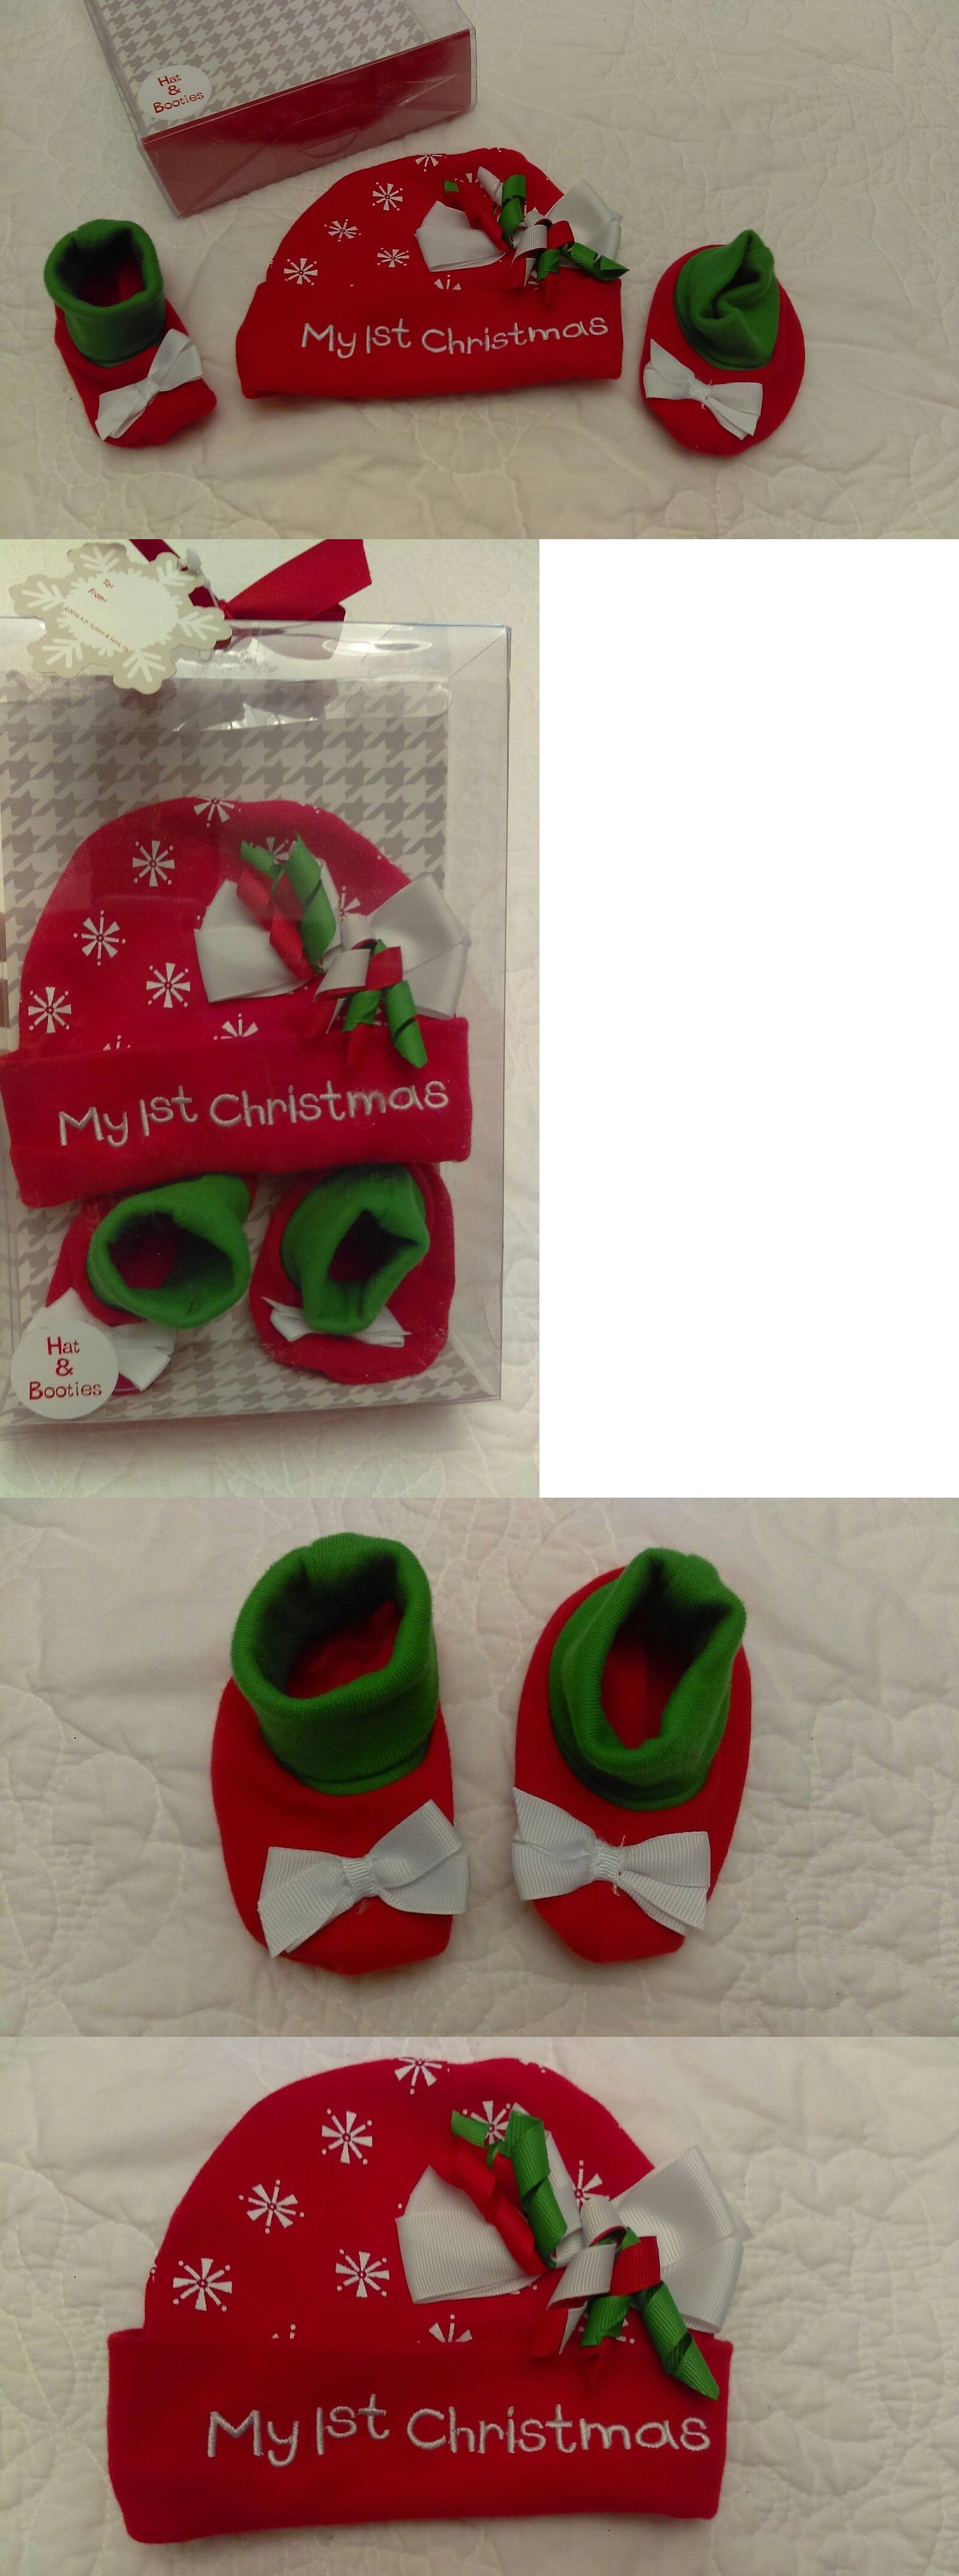 Outfits and Sets 163427  Baby Girl My First Christmas Hat And Booties ~ 0  To 6 Months -  BUY IT NOW ONLY   10.5 on  eBay  outfits  first  christmas   booties ... ac5e0c3a169